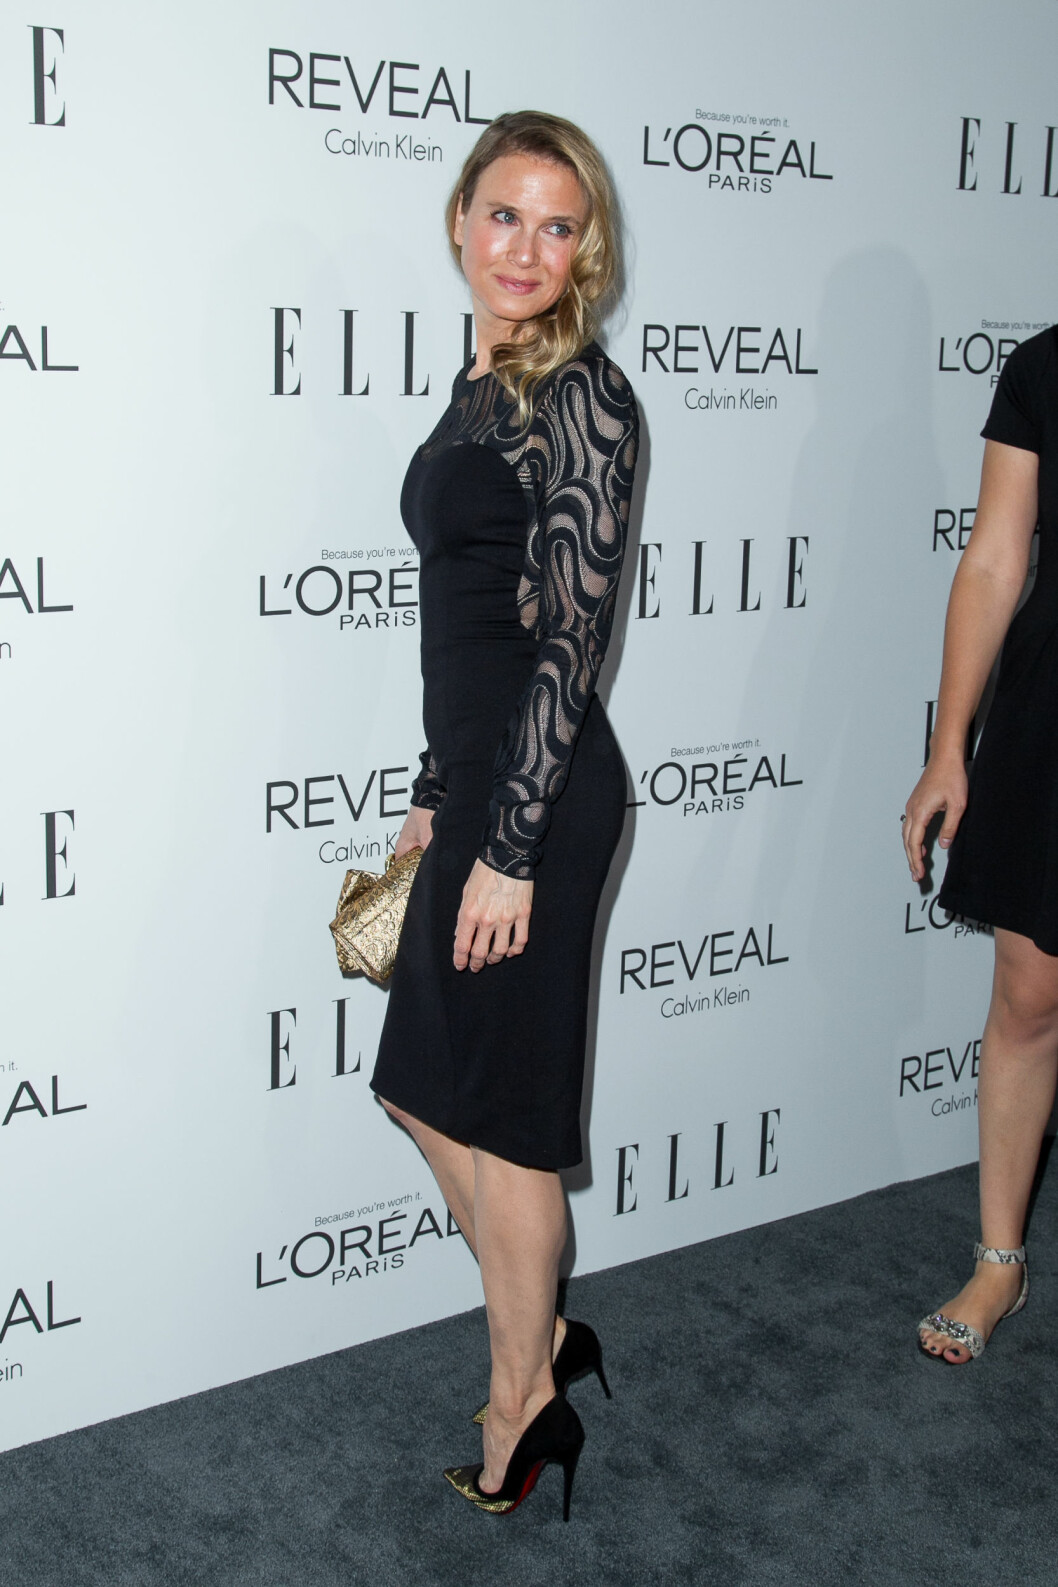 Renee Zellweger and recording artist Doyle Bramhall II attend ELLE's 21st annual Women in Hollywood event at Four Seasons Hotel Los Angeles on October 20, 2014 in Beverly Hills, California.  Pictured: Renee Zellweger Ref: SPL863012  201014   Picture by: Emmerson / Splash News  Splash News and Pictures Los Angeles:	310-821-2666 New York:	212-619-2666 London:	870-934-2666 photodesk@splashnews.com  Foto: Emmerson / Splash News/ All Over Press